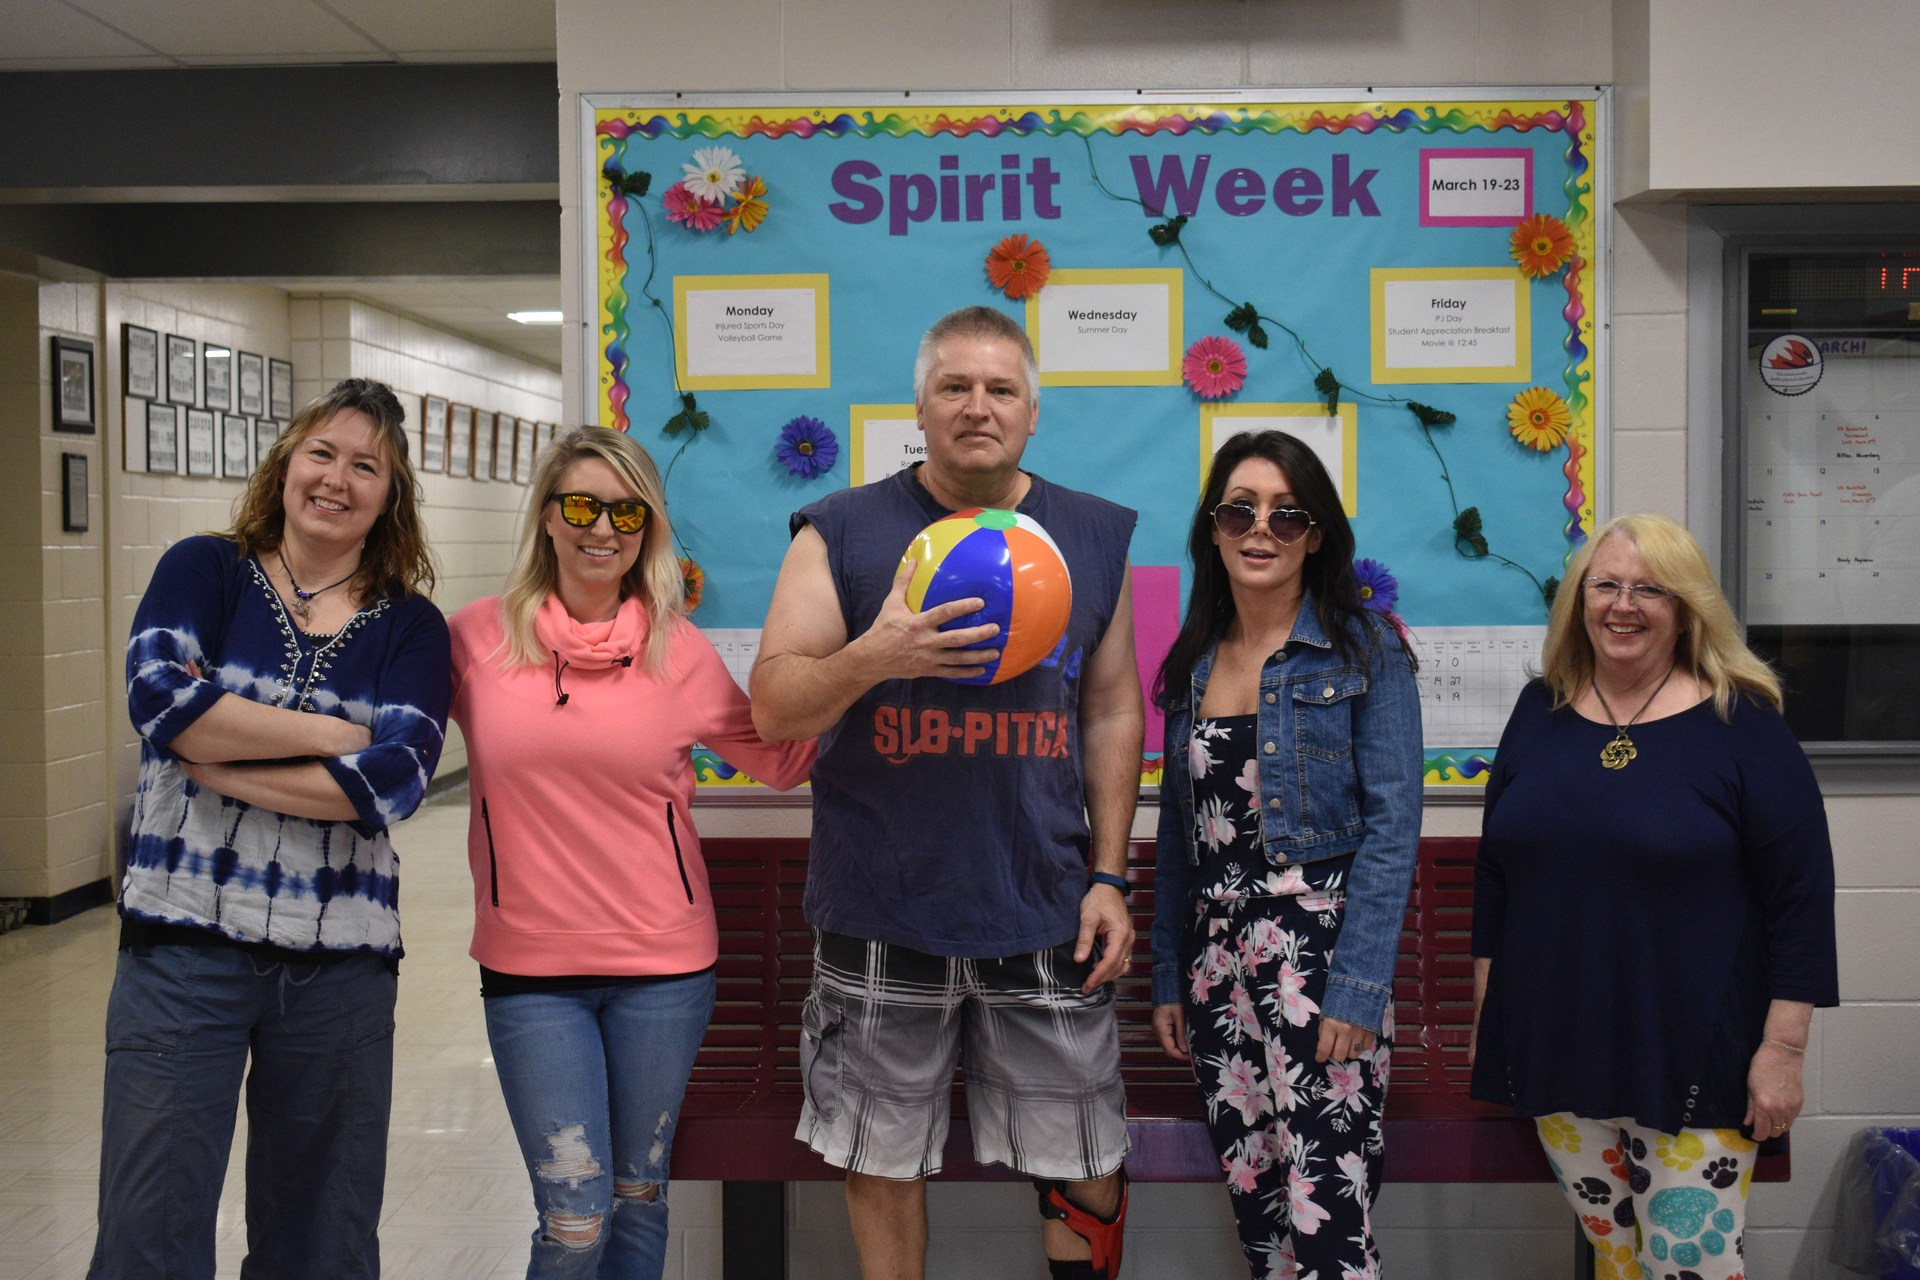 Staff members dressed for Spirit Week activities